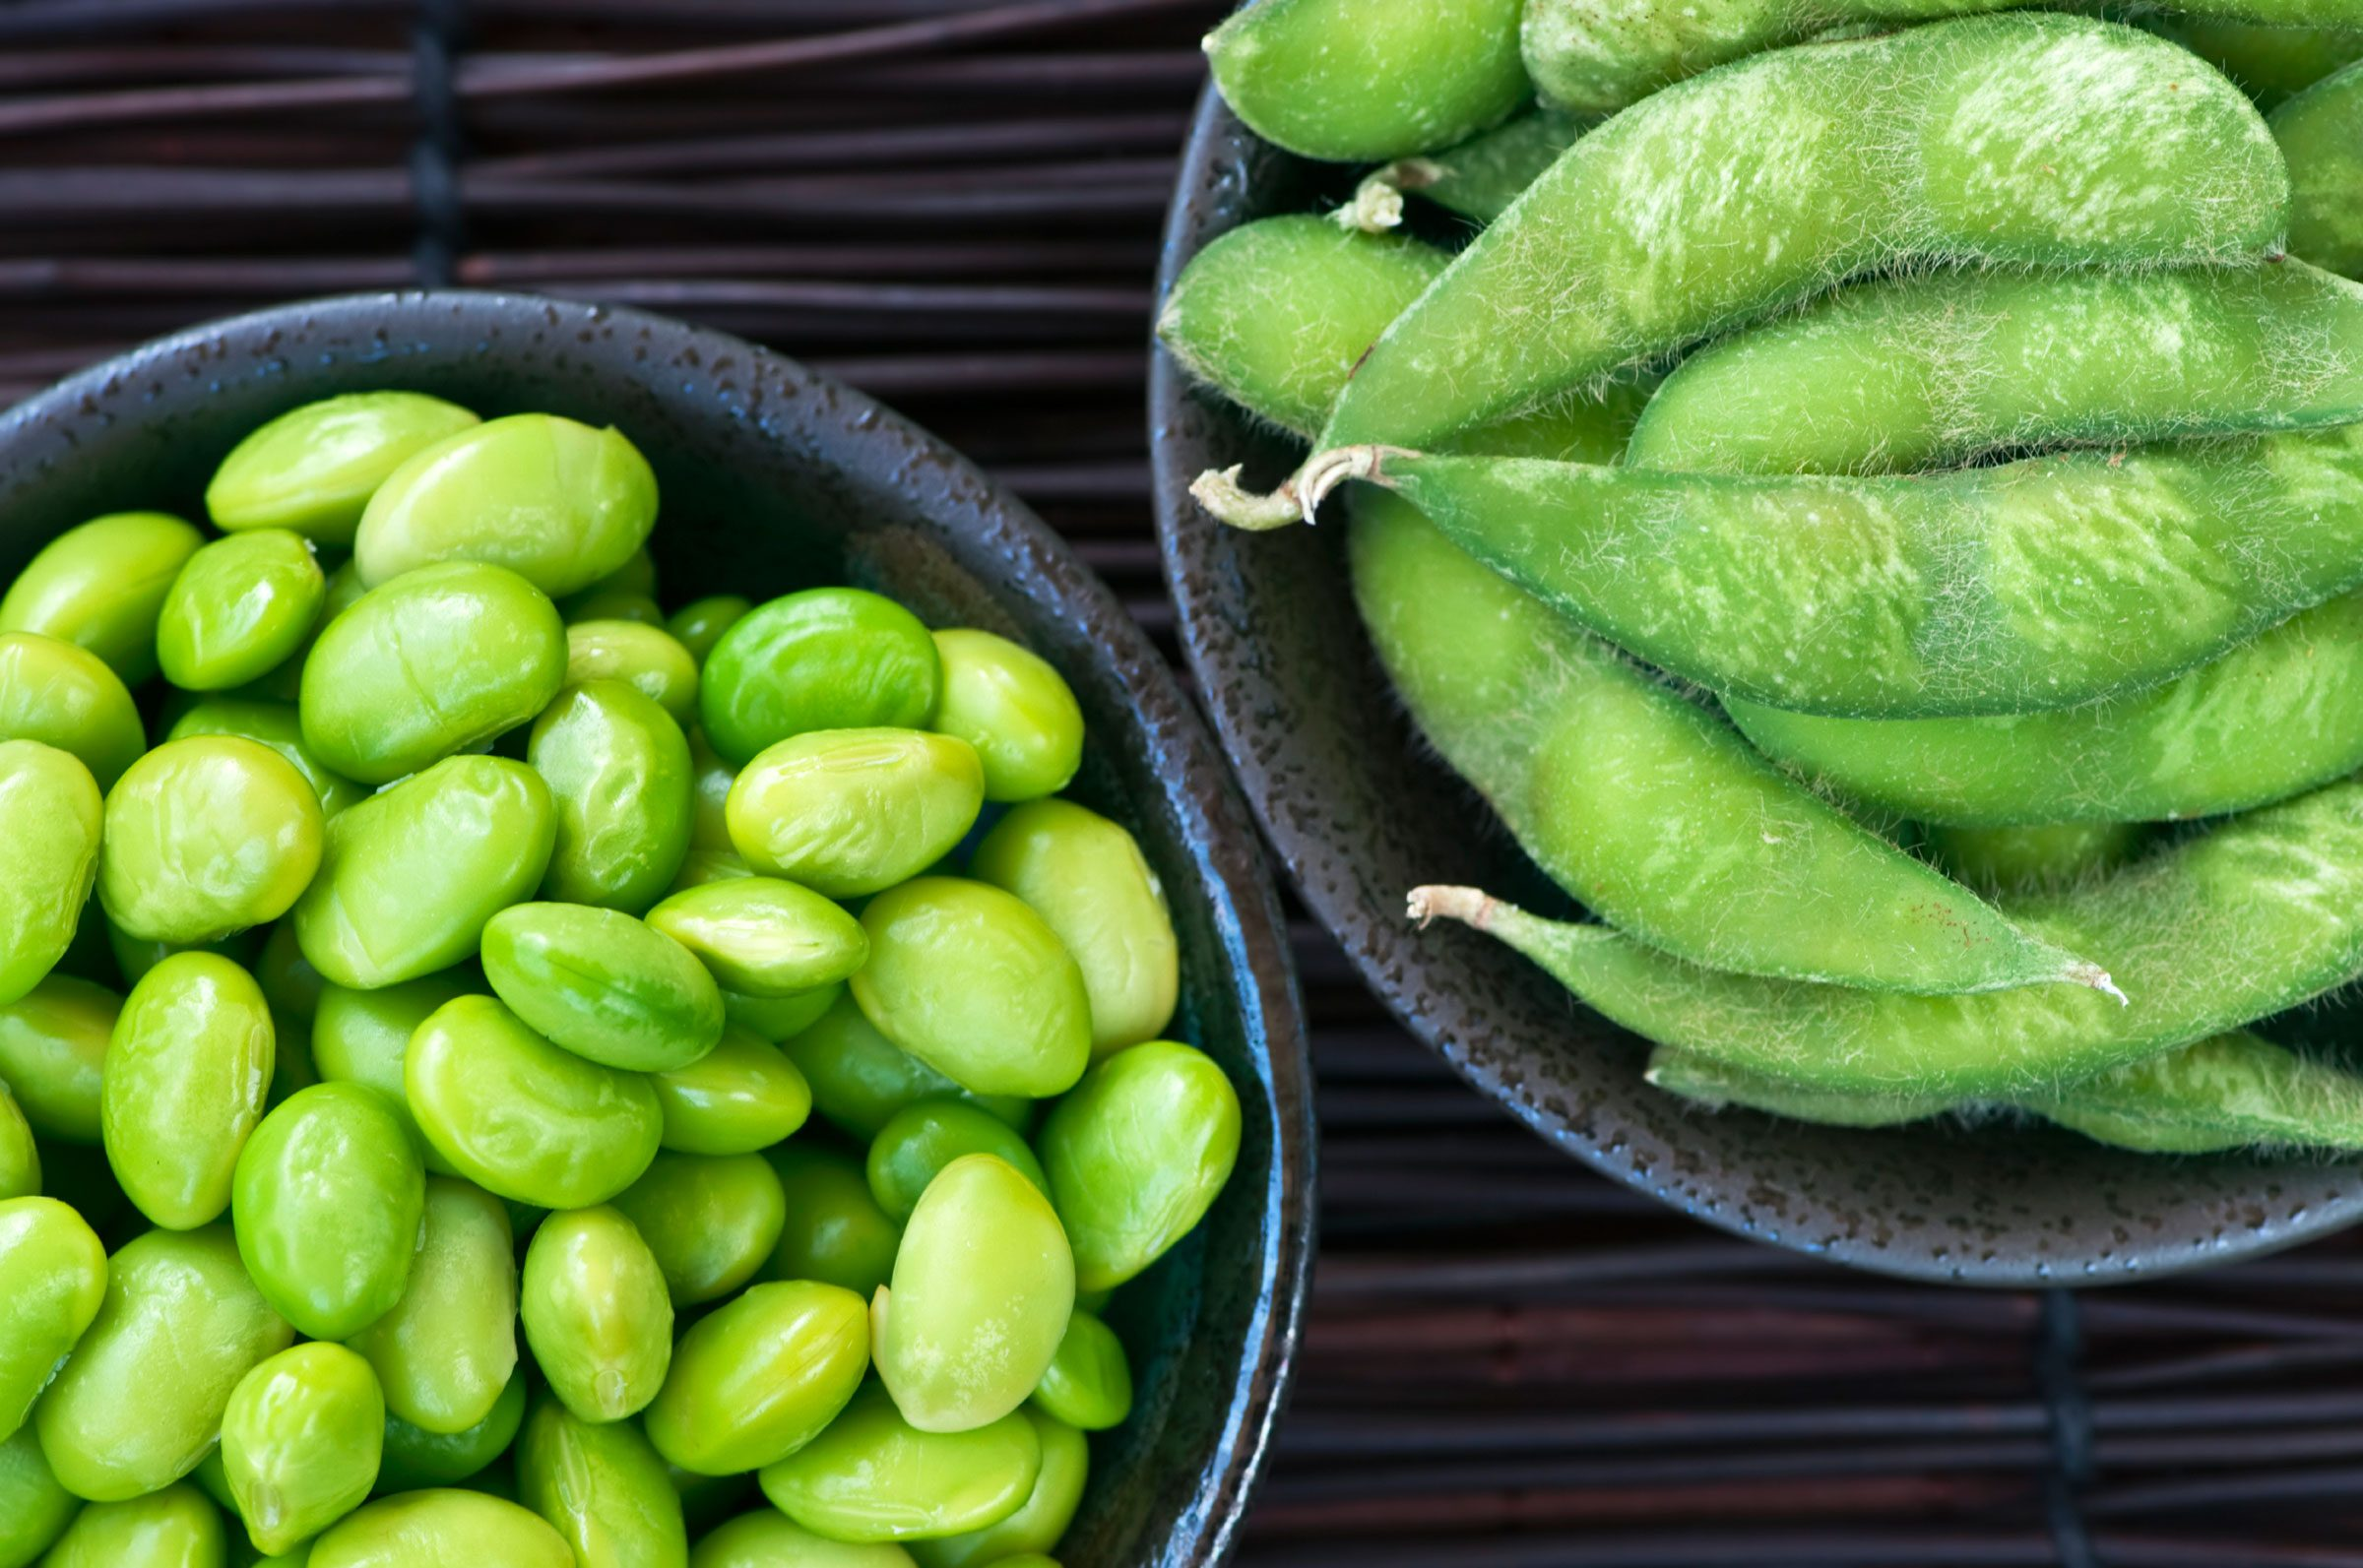 Go to the freezer section for frozen edamame.